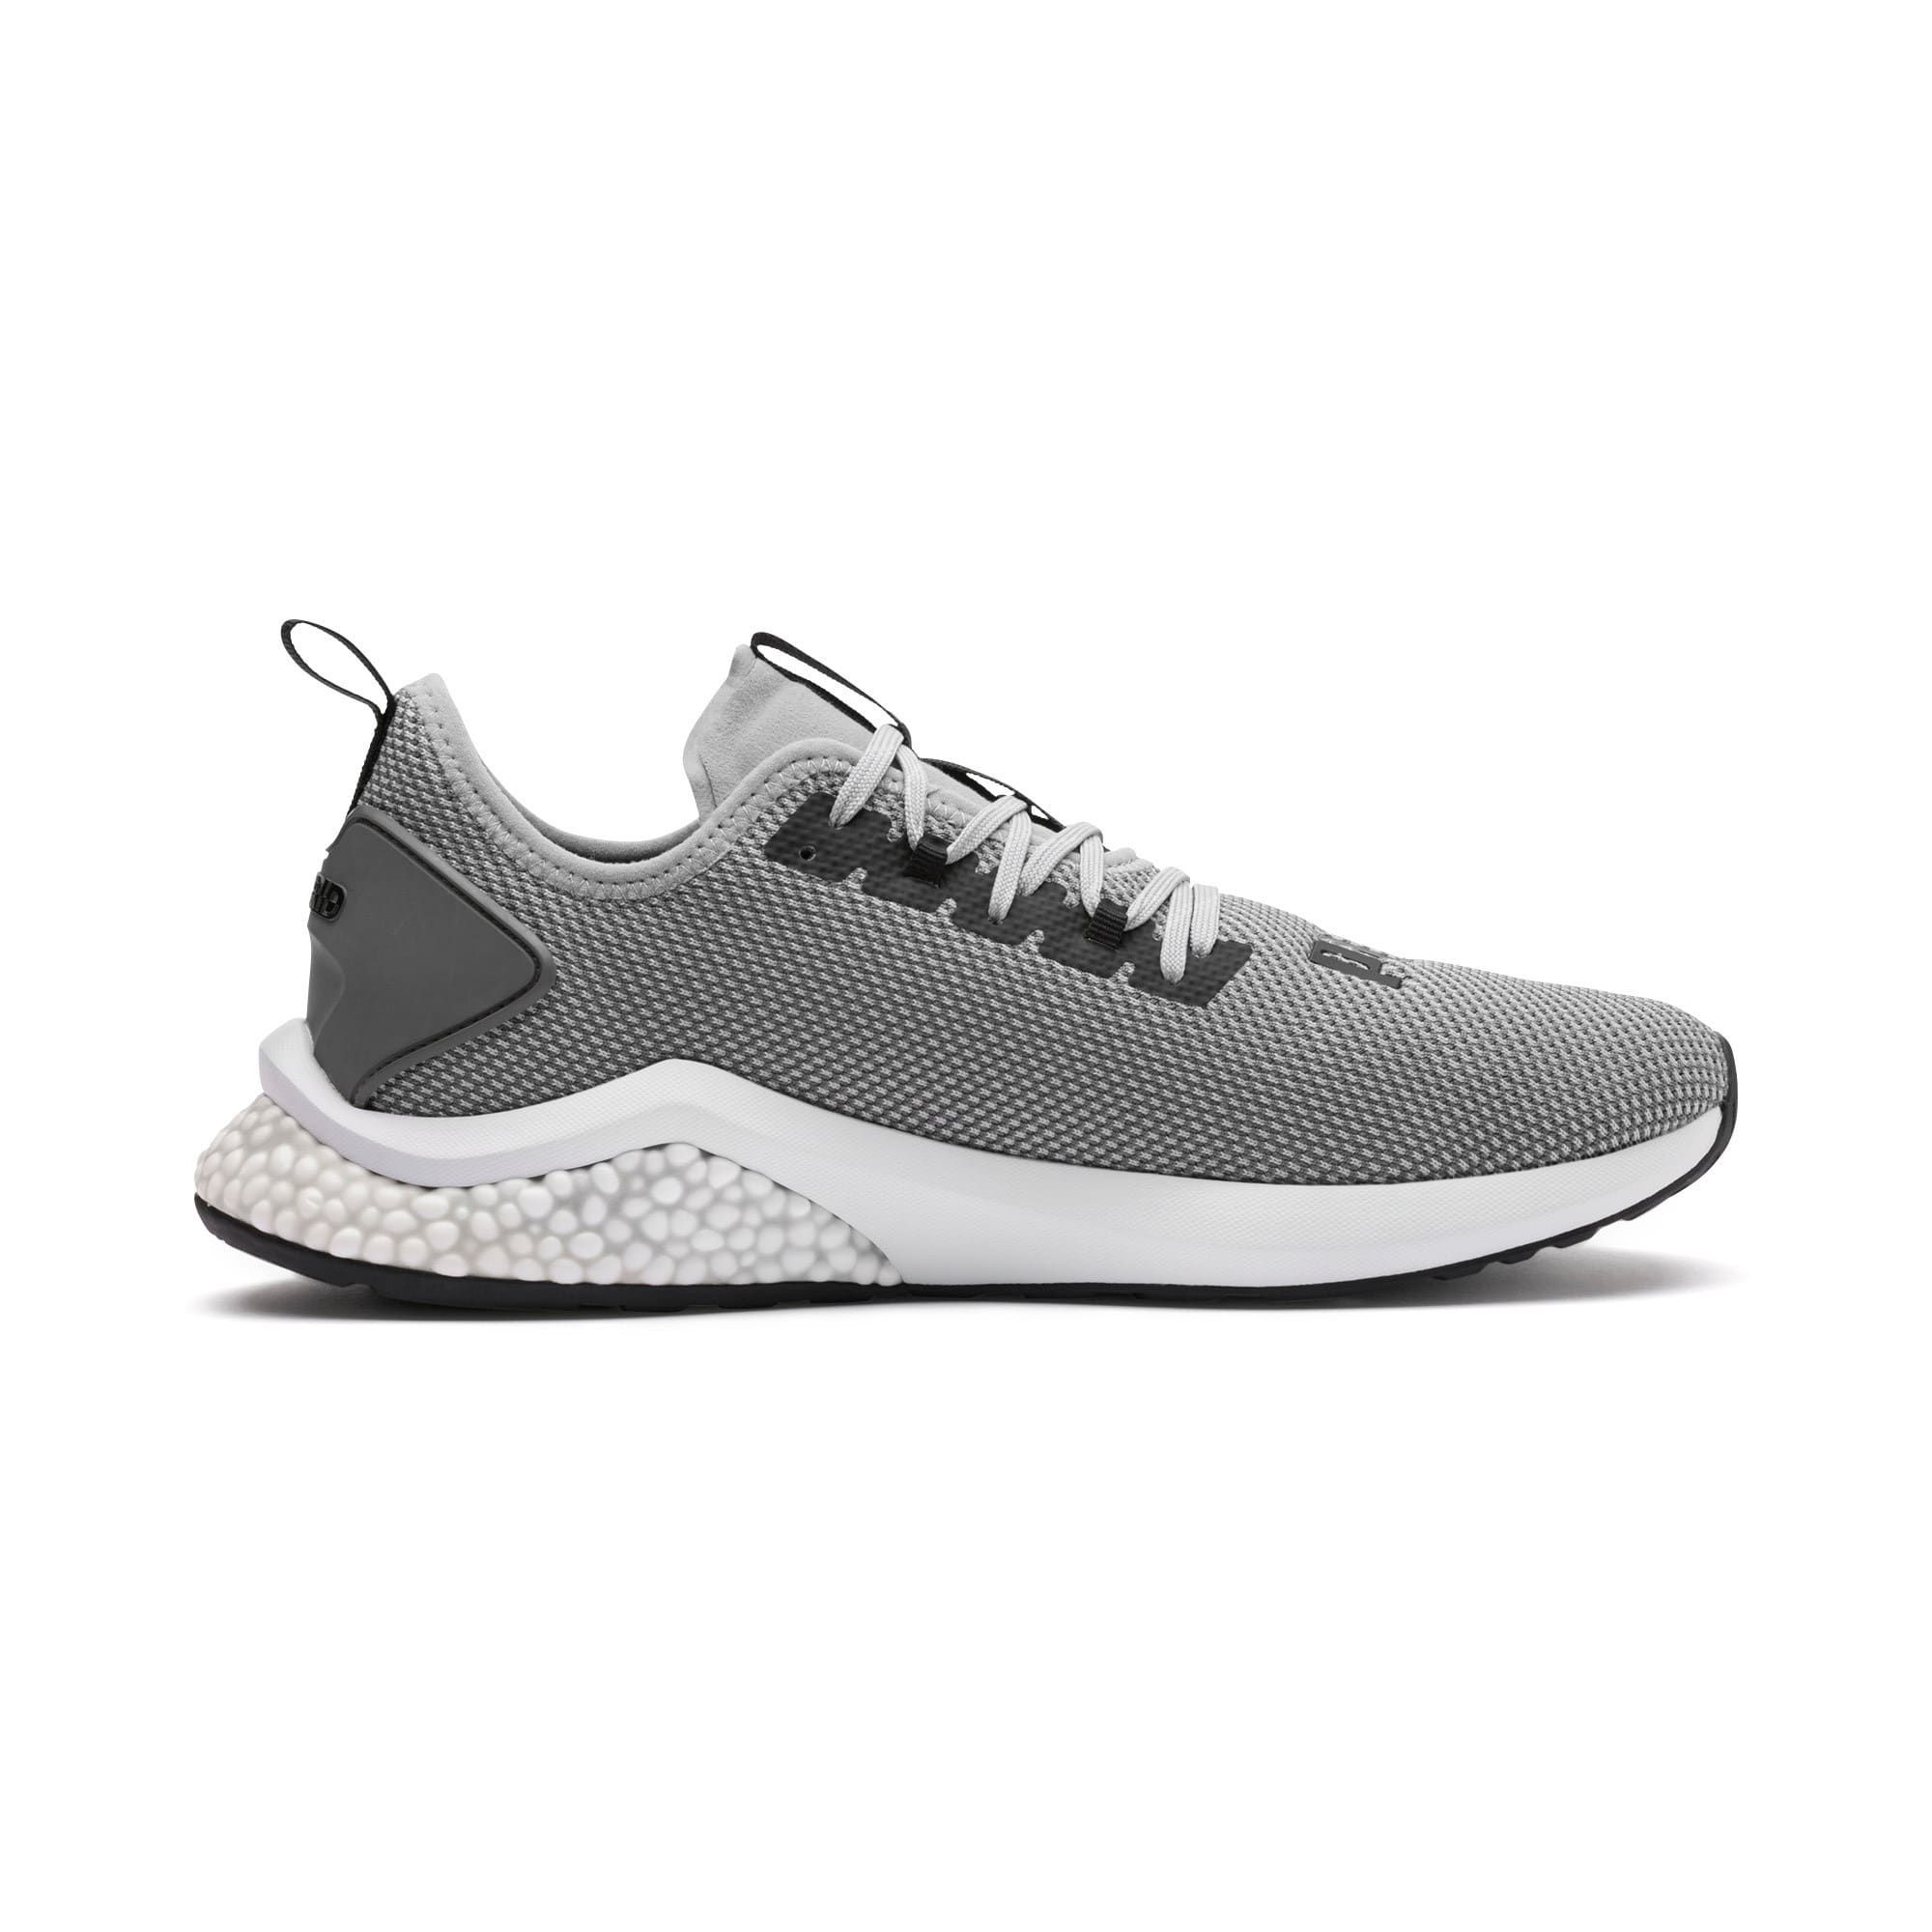 PUMA Hybrid Nx Mens Running Shoes in Quarry Grey size 105